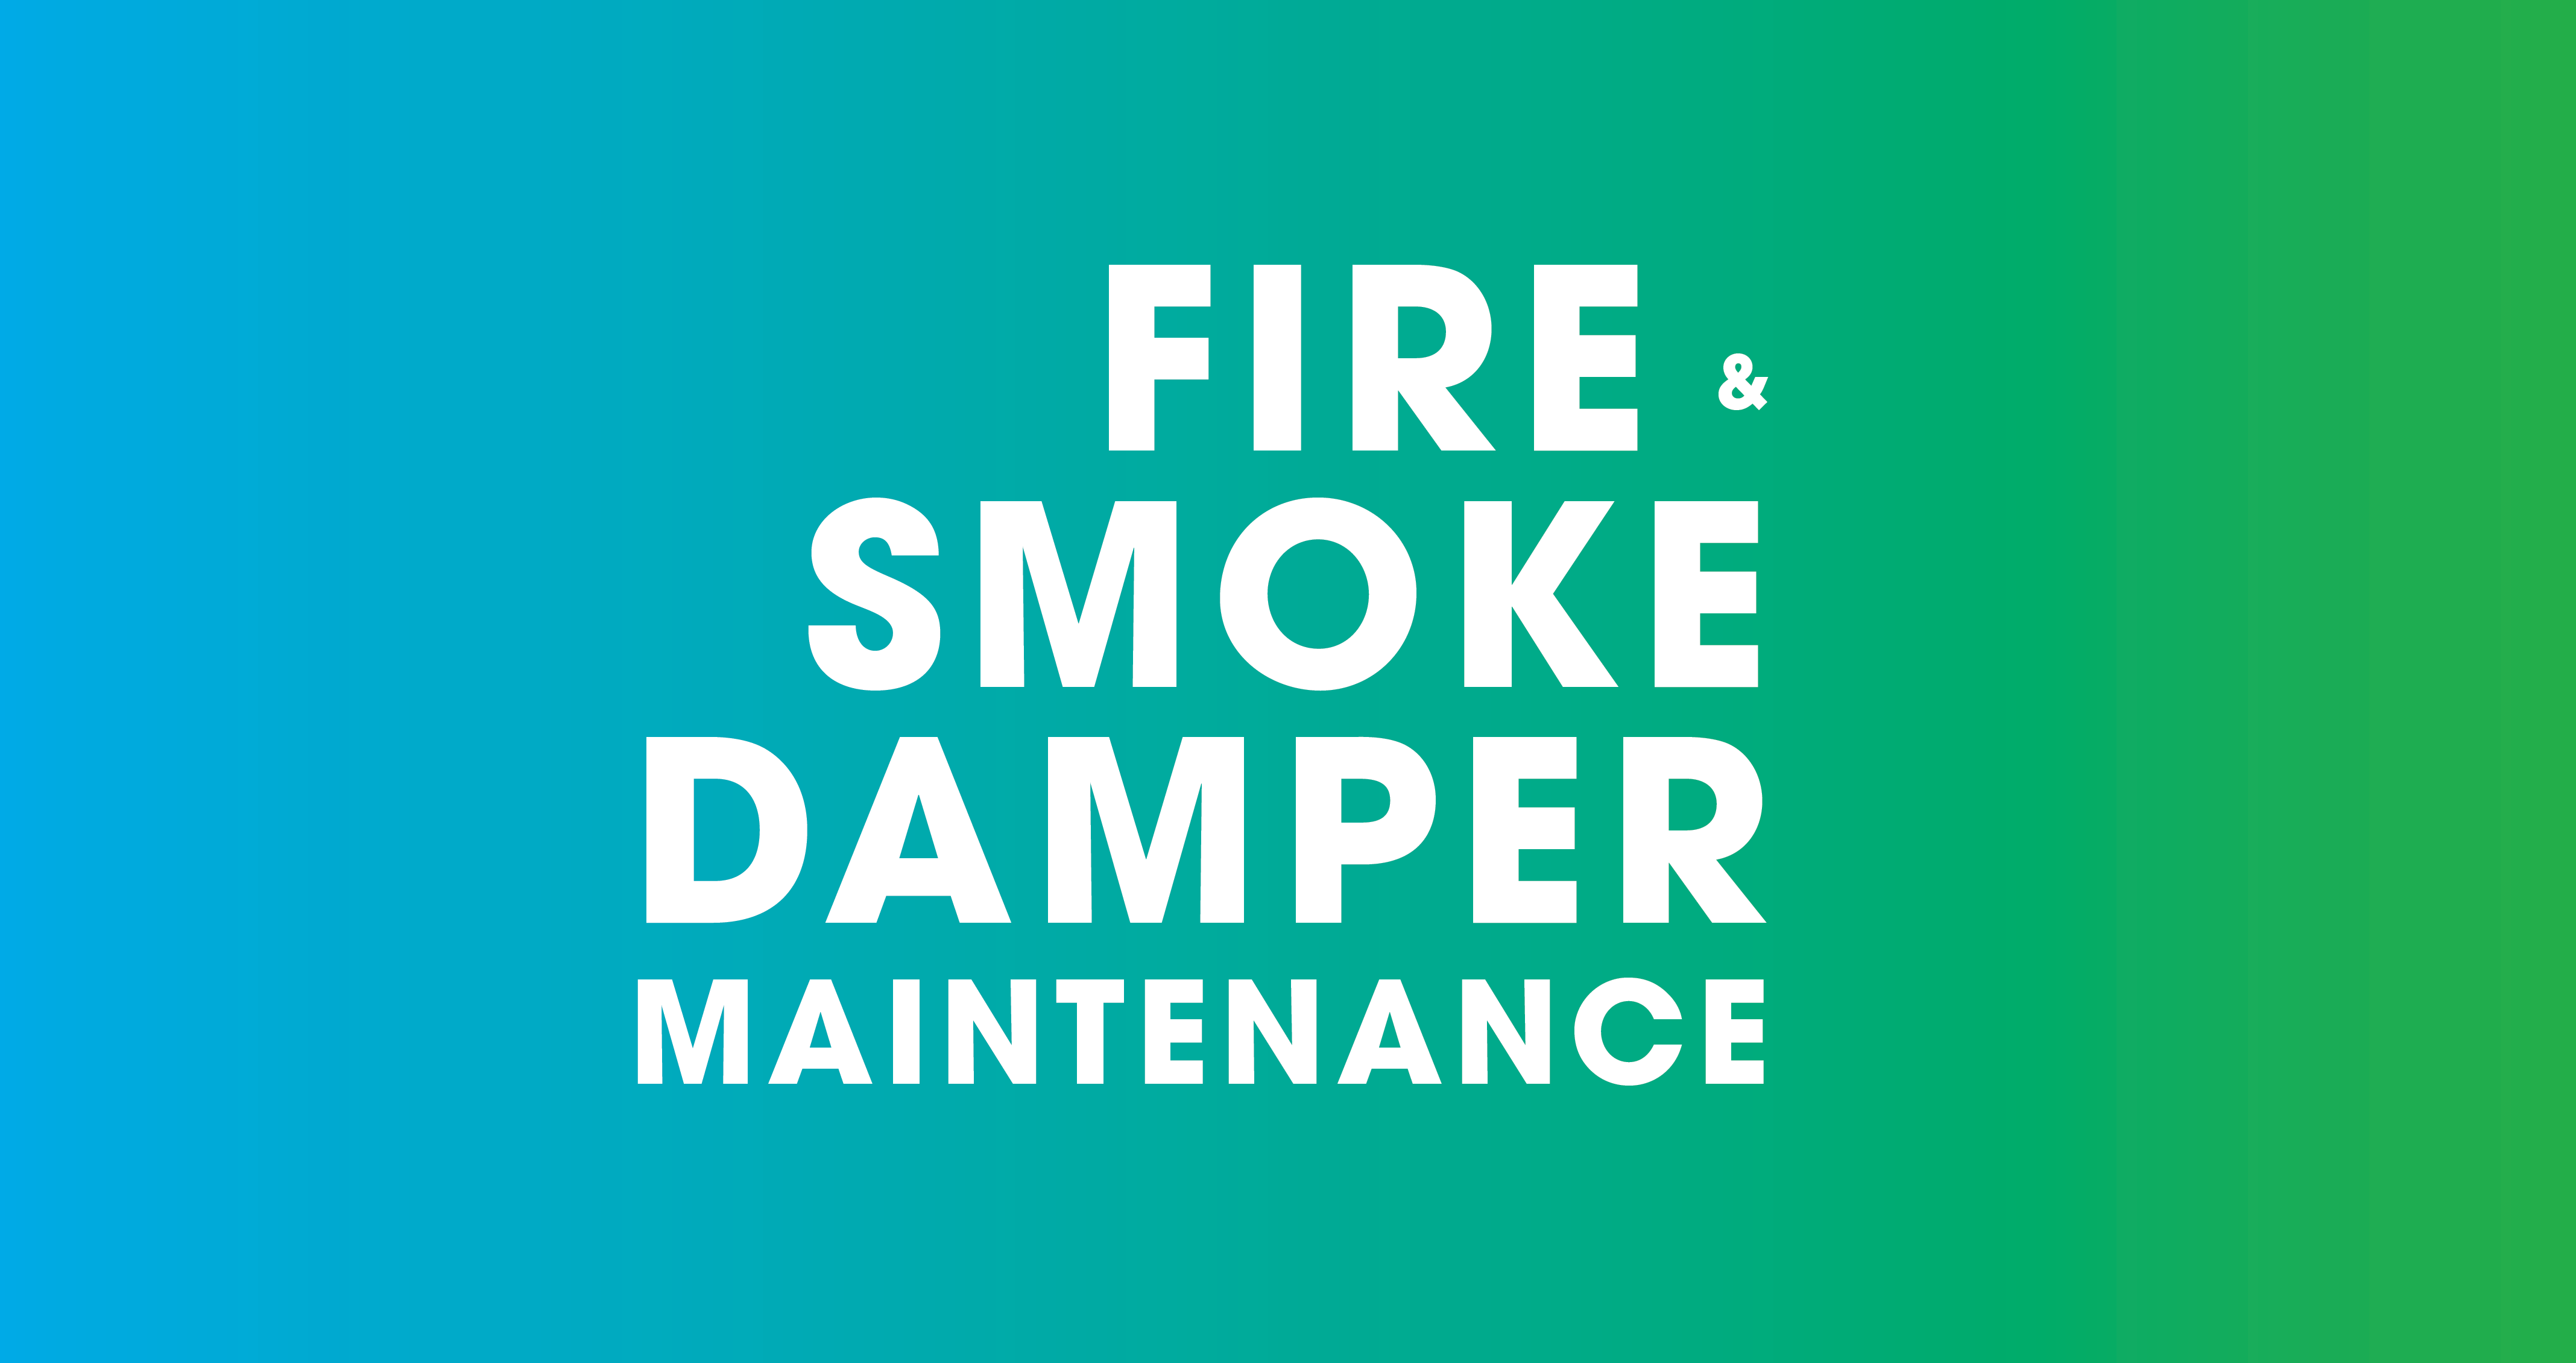 Fire and Smoke Damper Maintenance